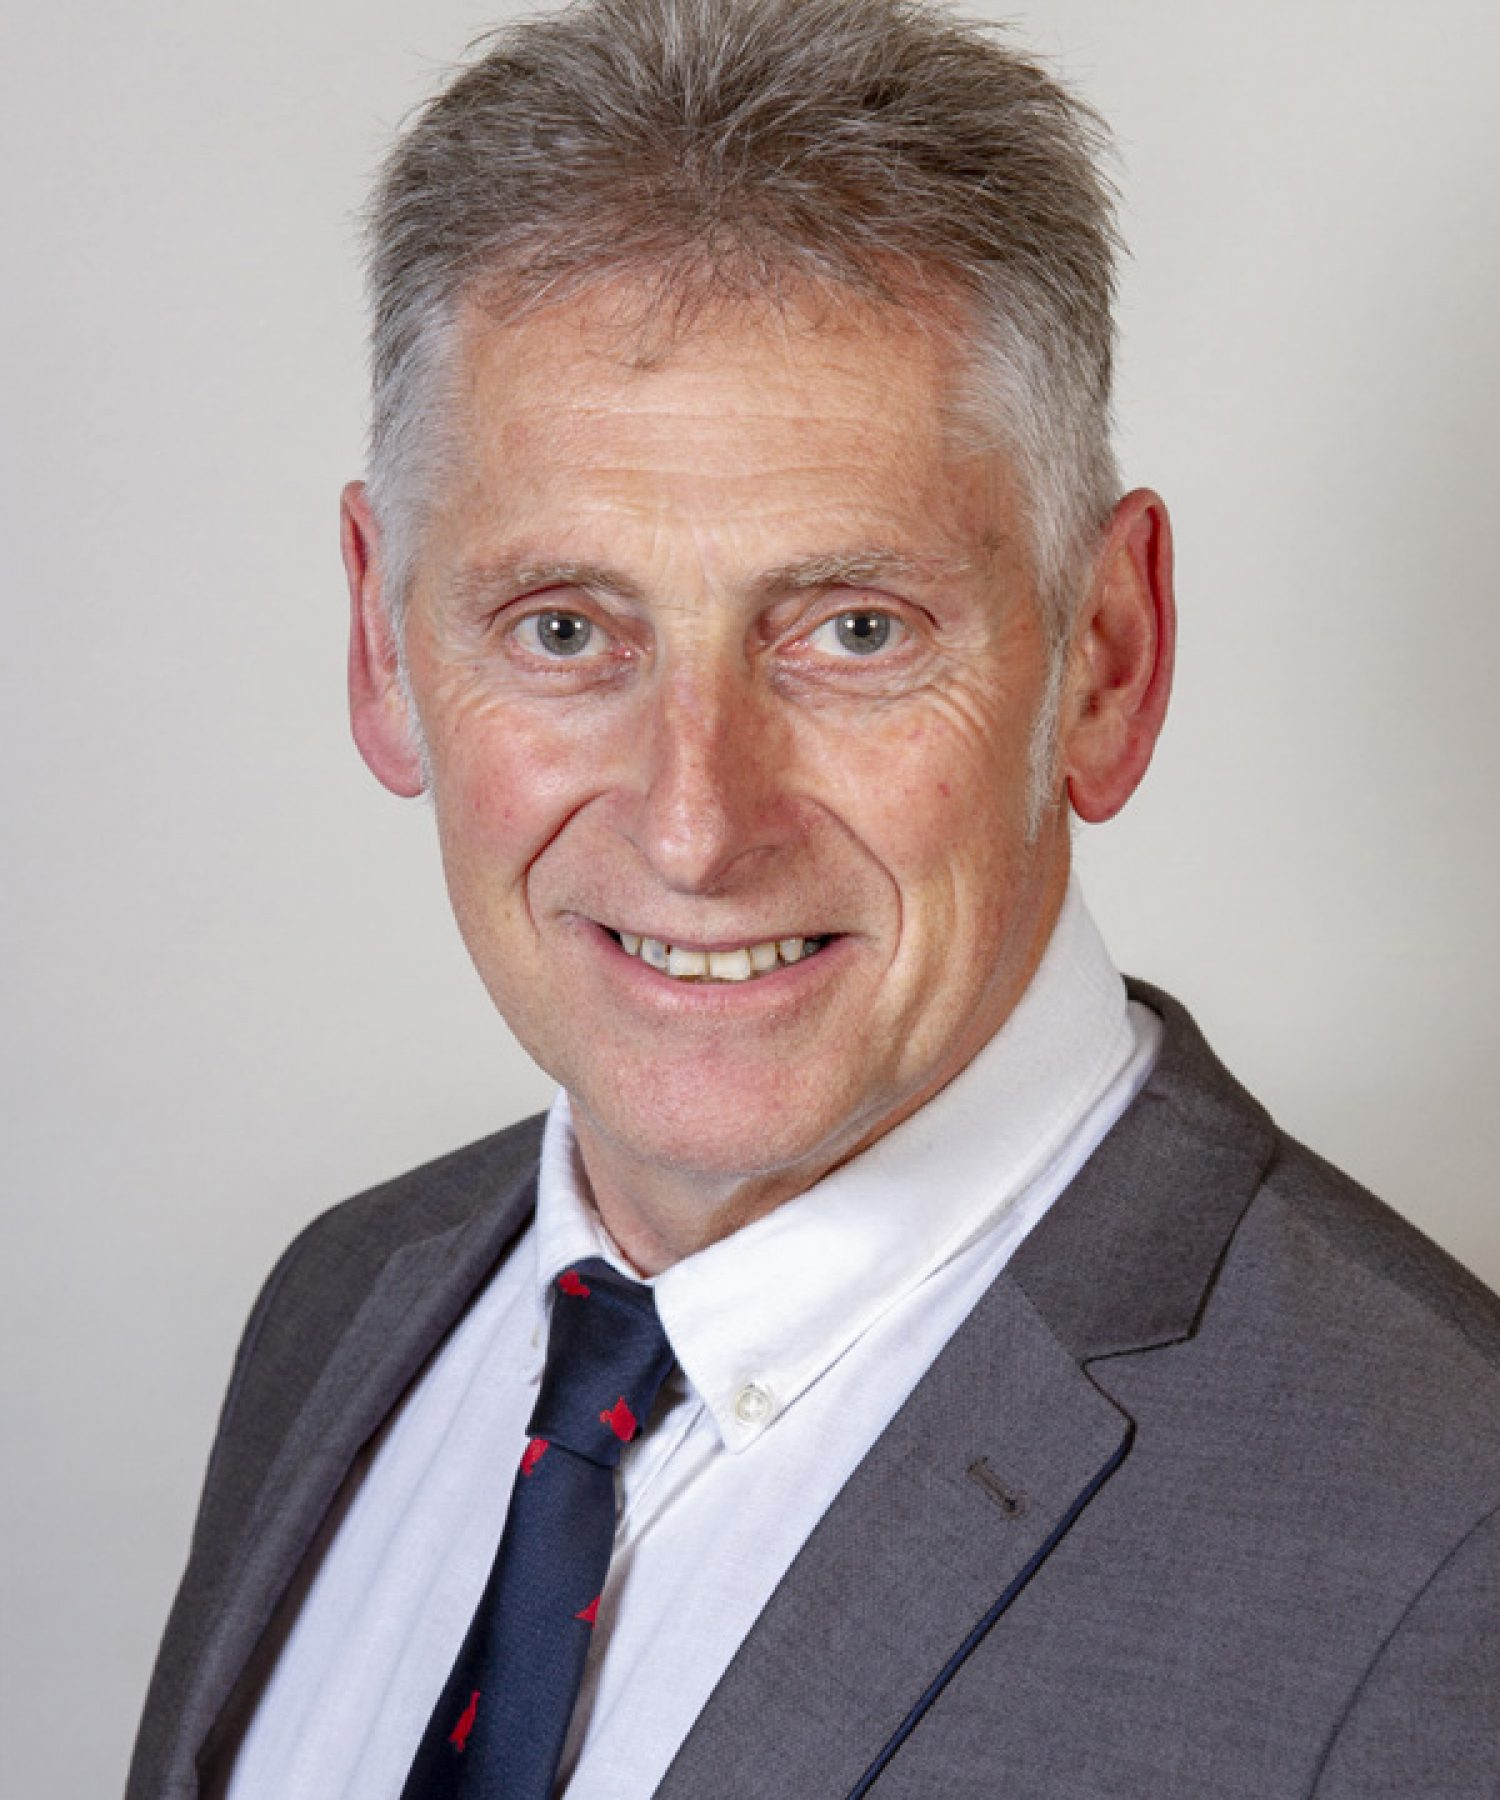 Image of Cllr Pete Wilkinson taken 2019